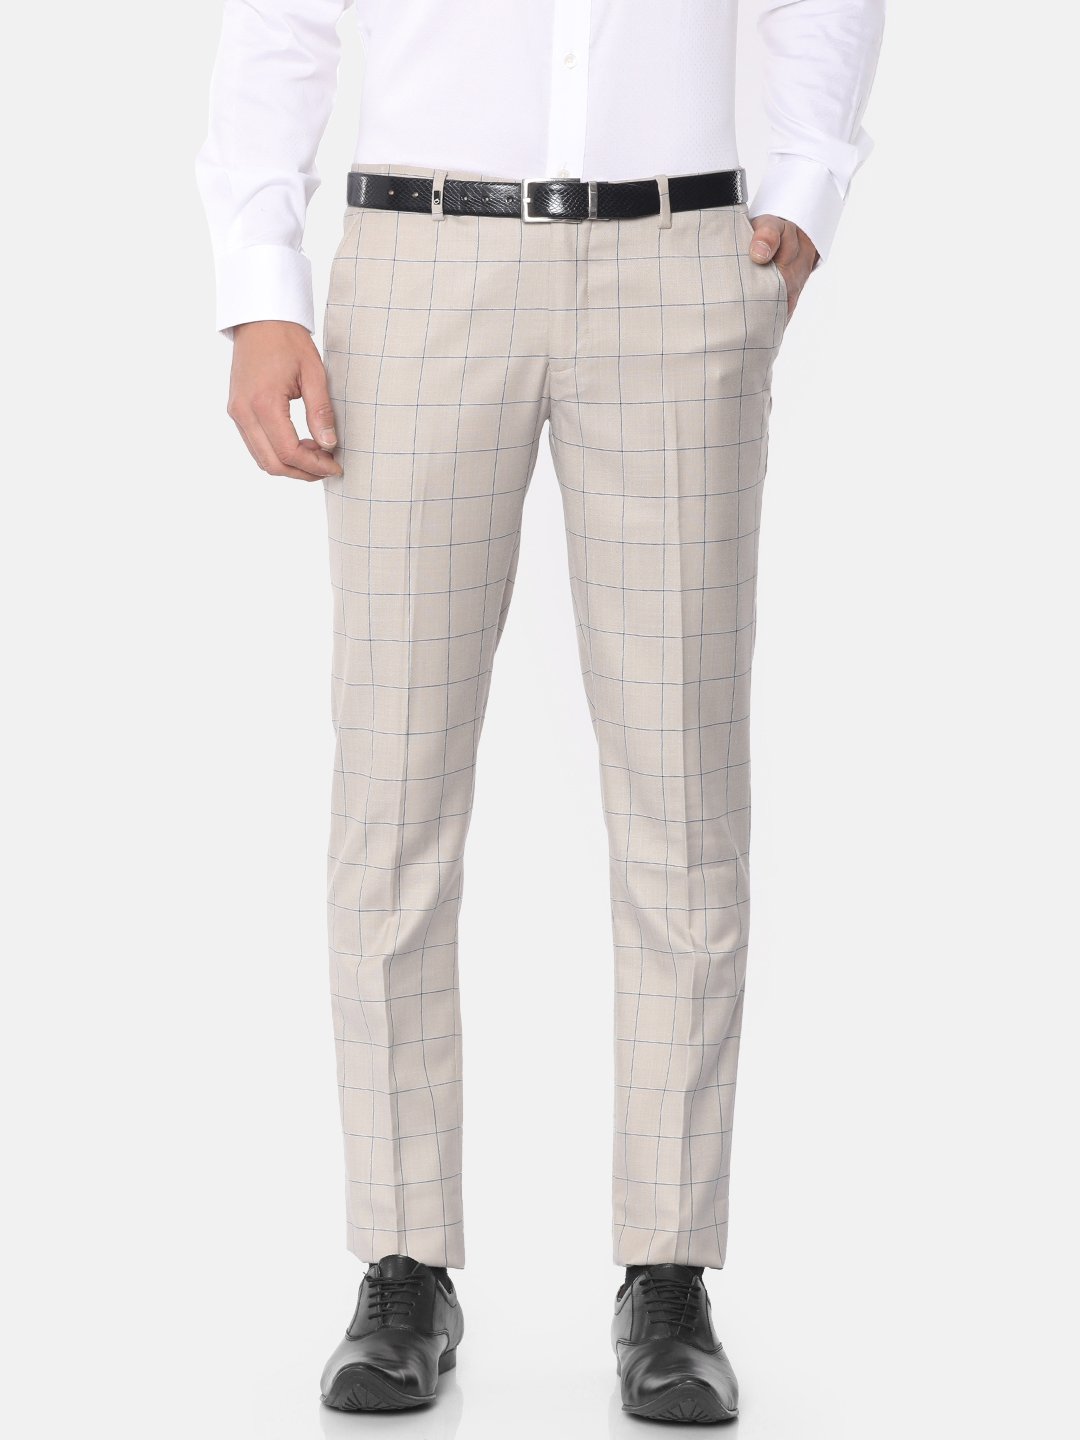 bd2a551eac3 Buy Oxemberg Men Beige Slim Fit Checked Formal Trousers - Trousers ...